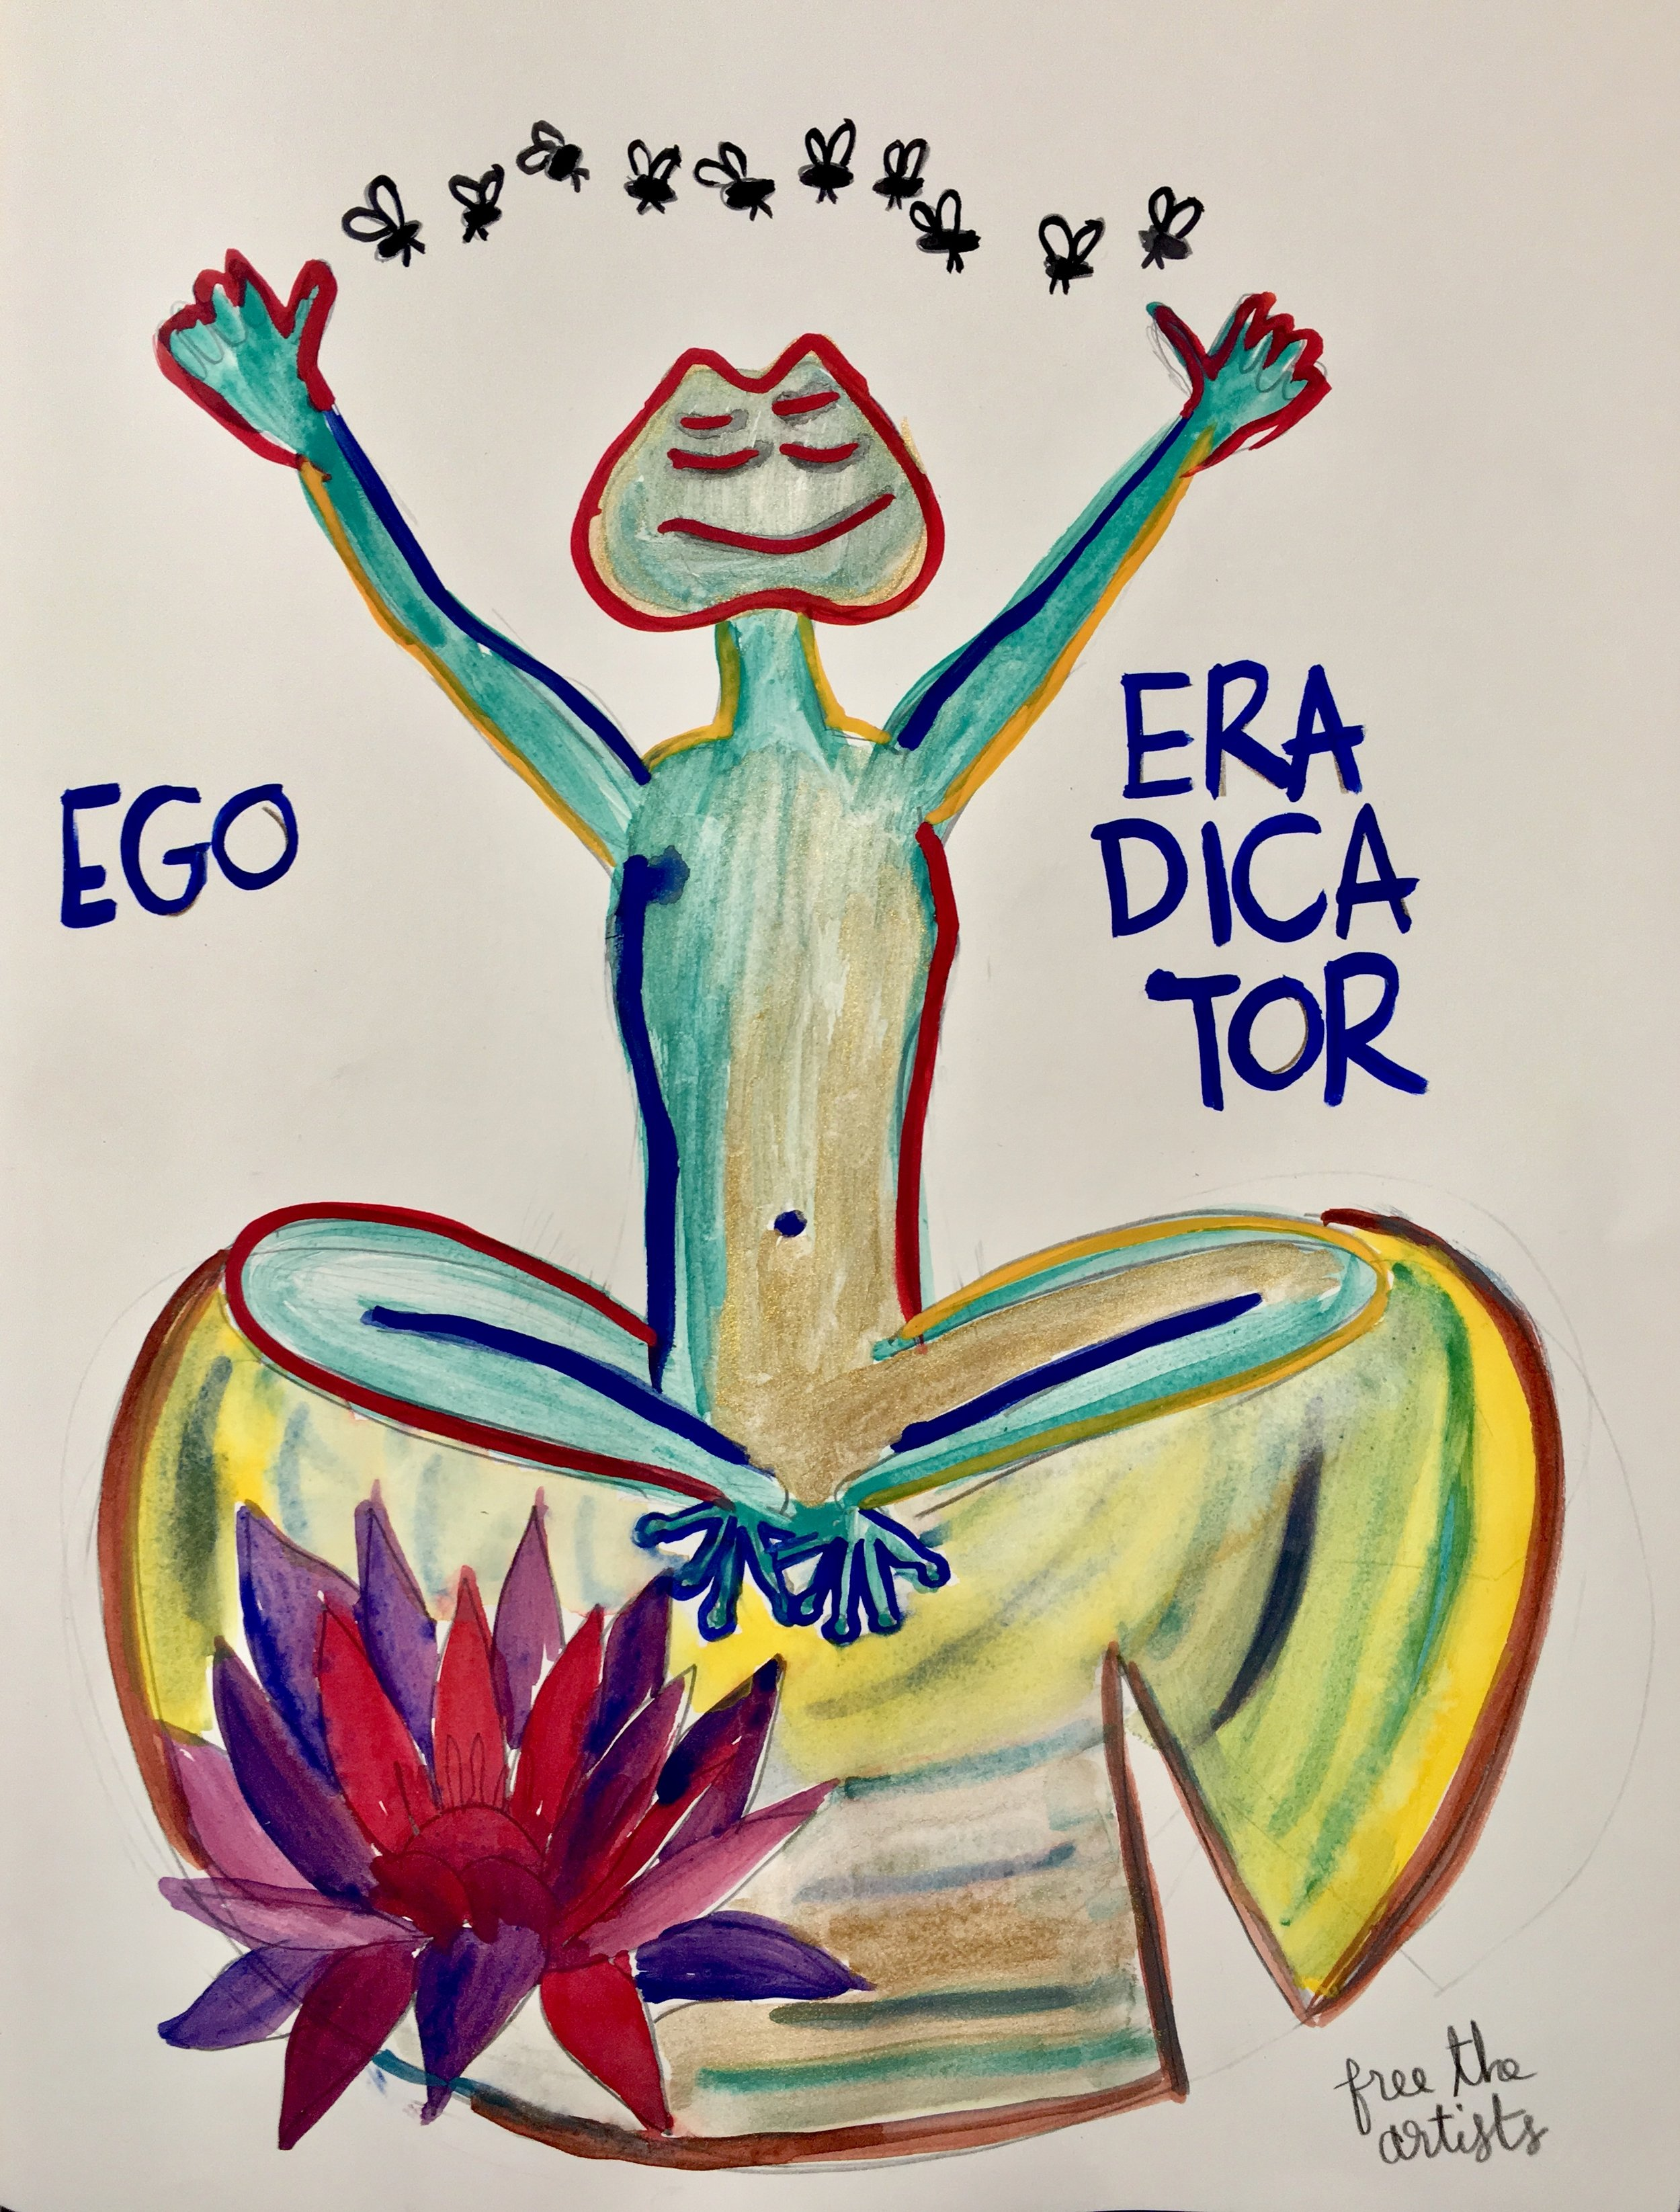 Ego Eradicator, 2019  pencil and watercolor on paper